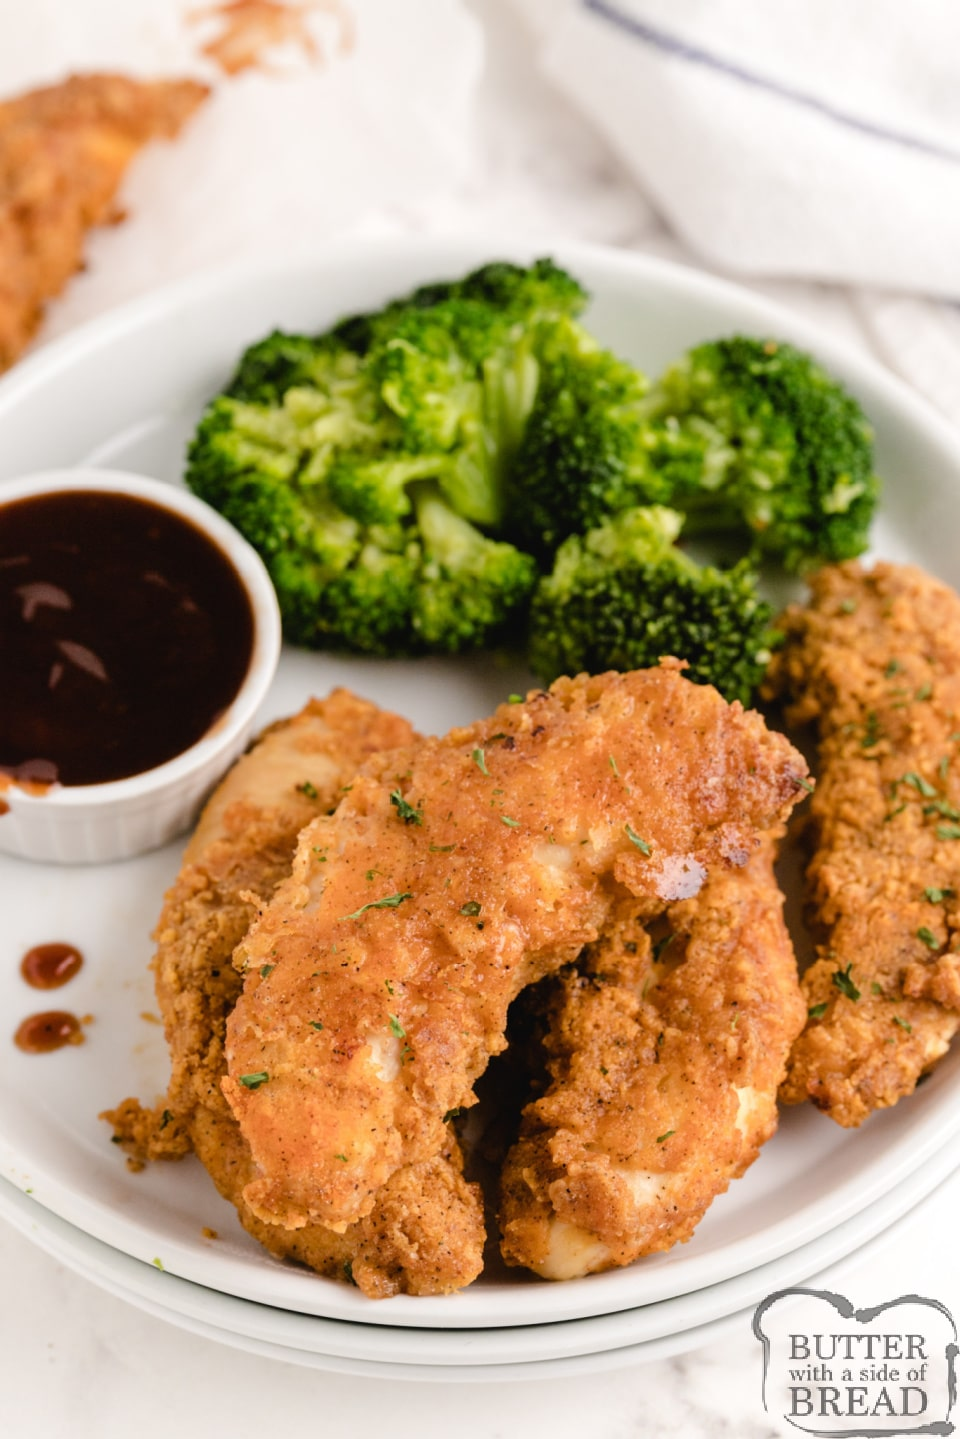 Chicken strips that are baked in the oven